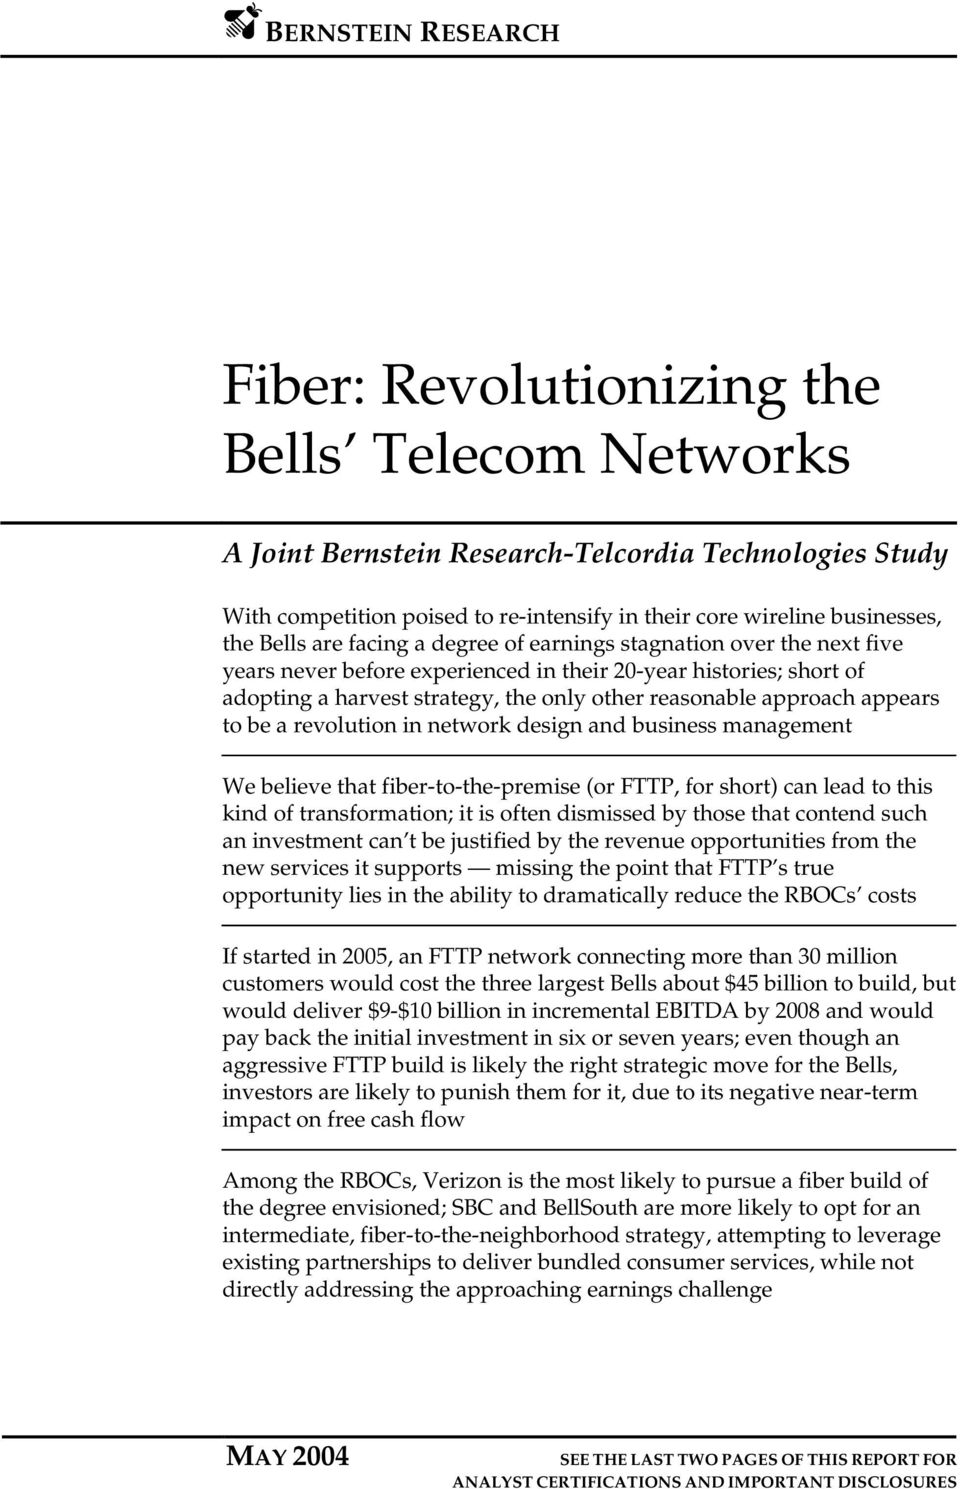 approach appears to be a revolution in network design and business management We believe that fiber-to-the-premise (or FTTP, for short) can lead to this kind of transformation; it is often dismissed